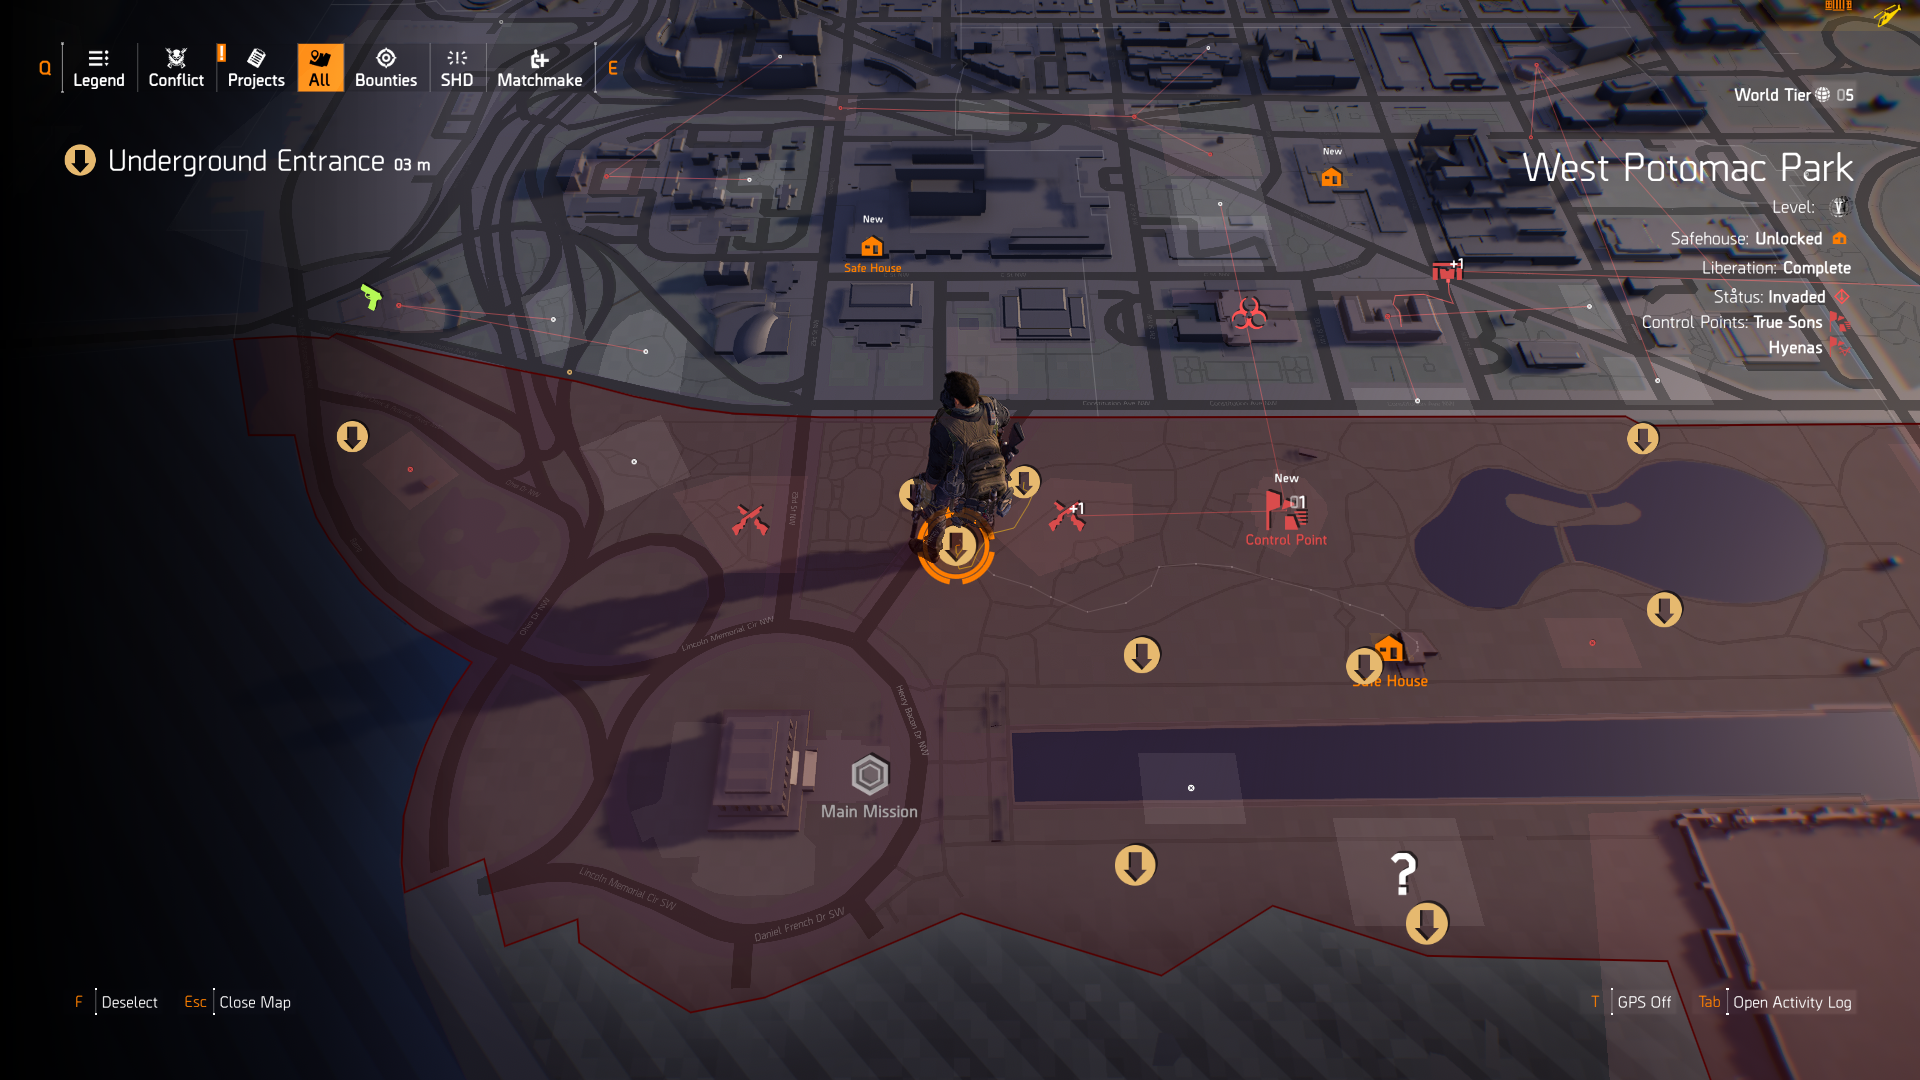 Find Hunters & Collect Masks in The Division 2 - Blogs